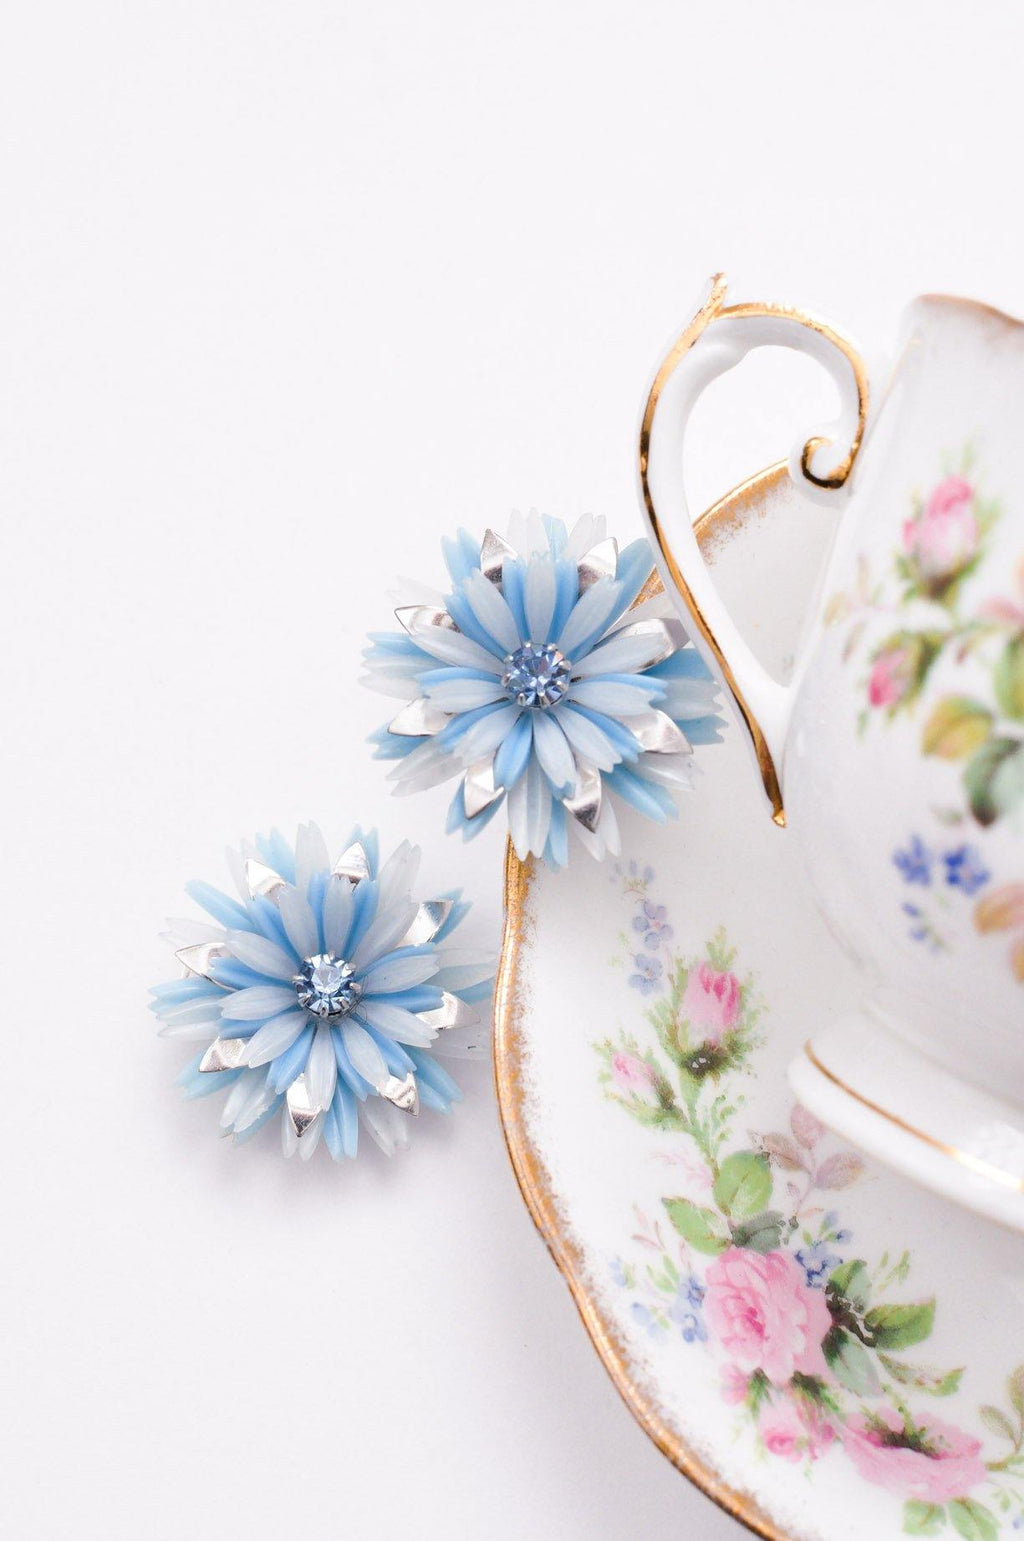 Blue Rhinestone Flower Clip-On Earrings